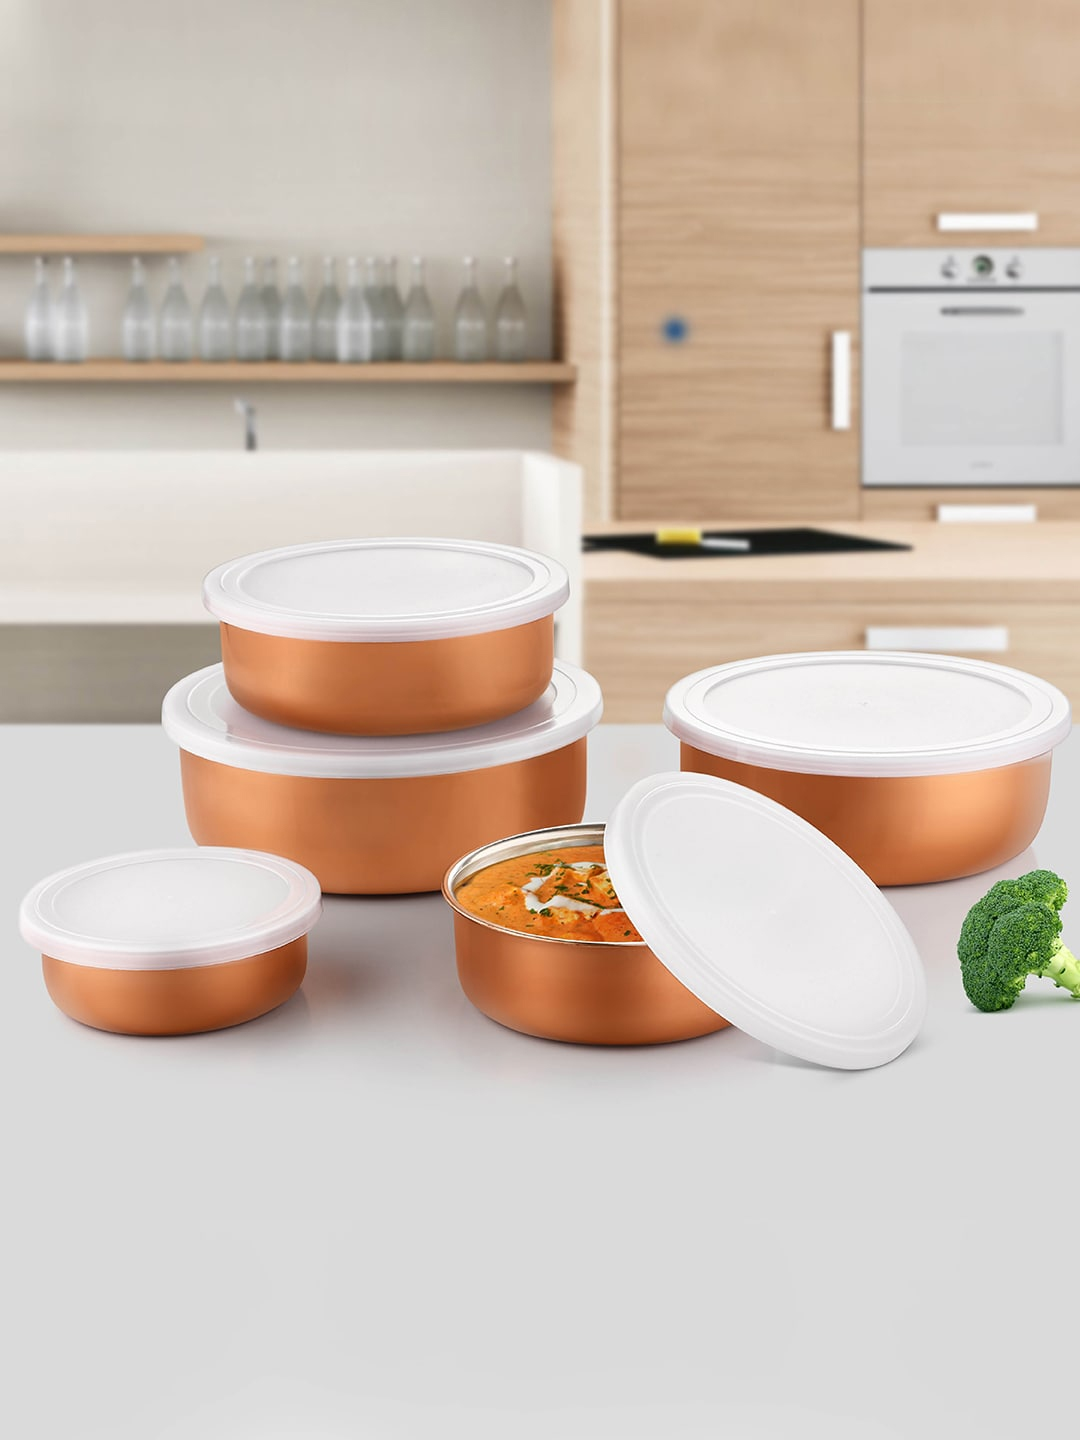 Jensons Set of 5 Copper Toned Solid Stainless Steel Bowl Storage Set With Covers